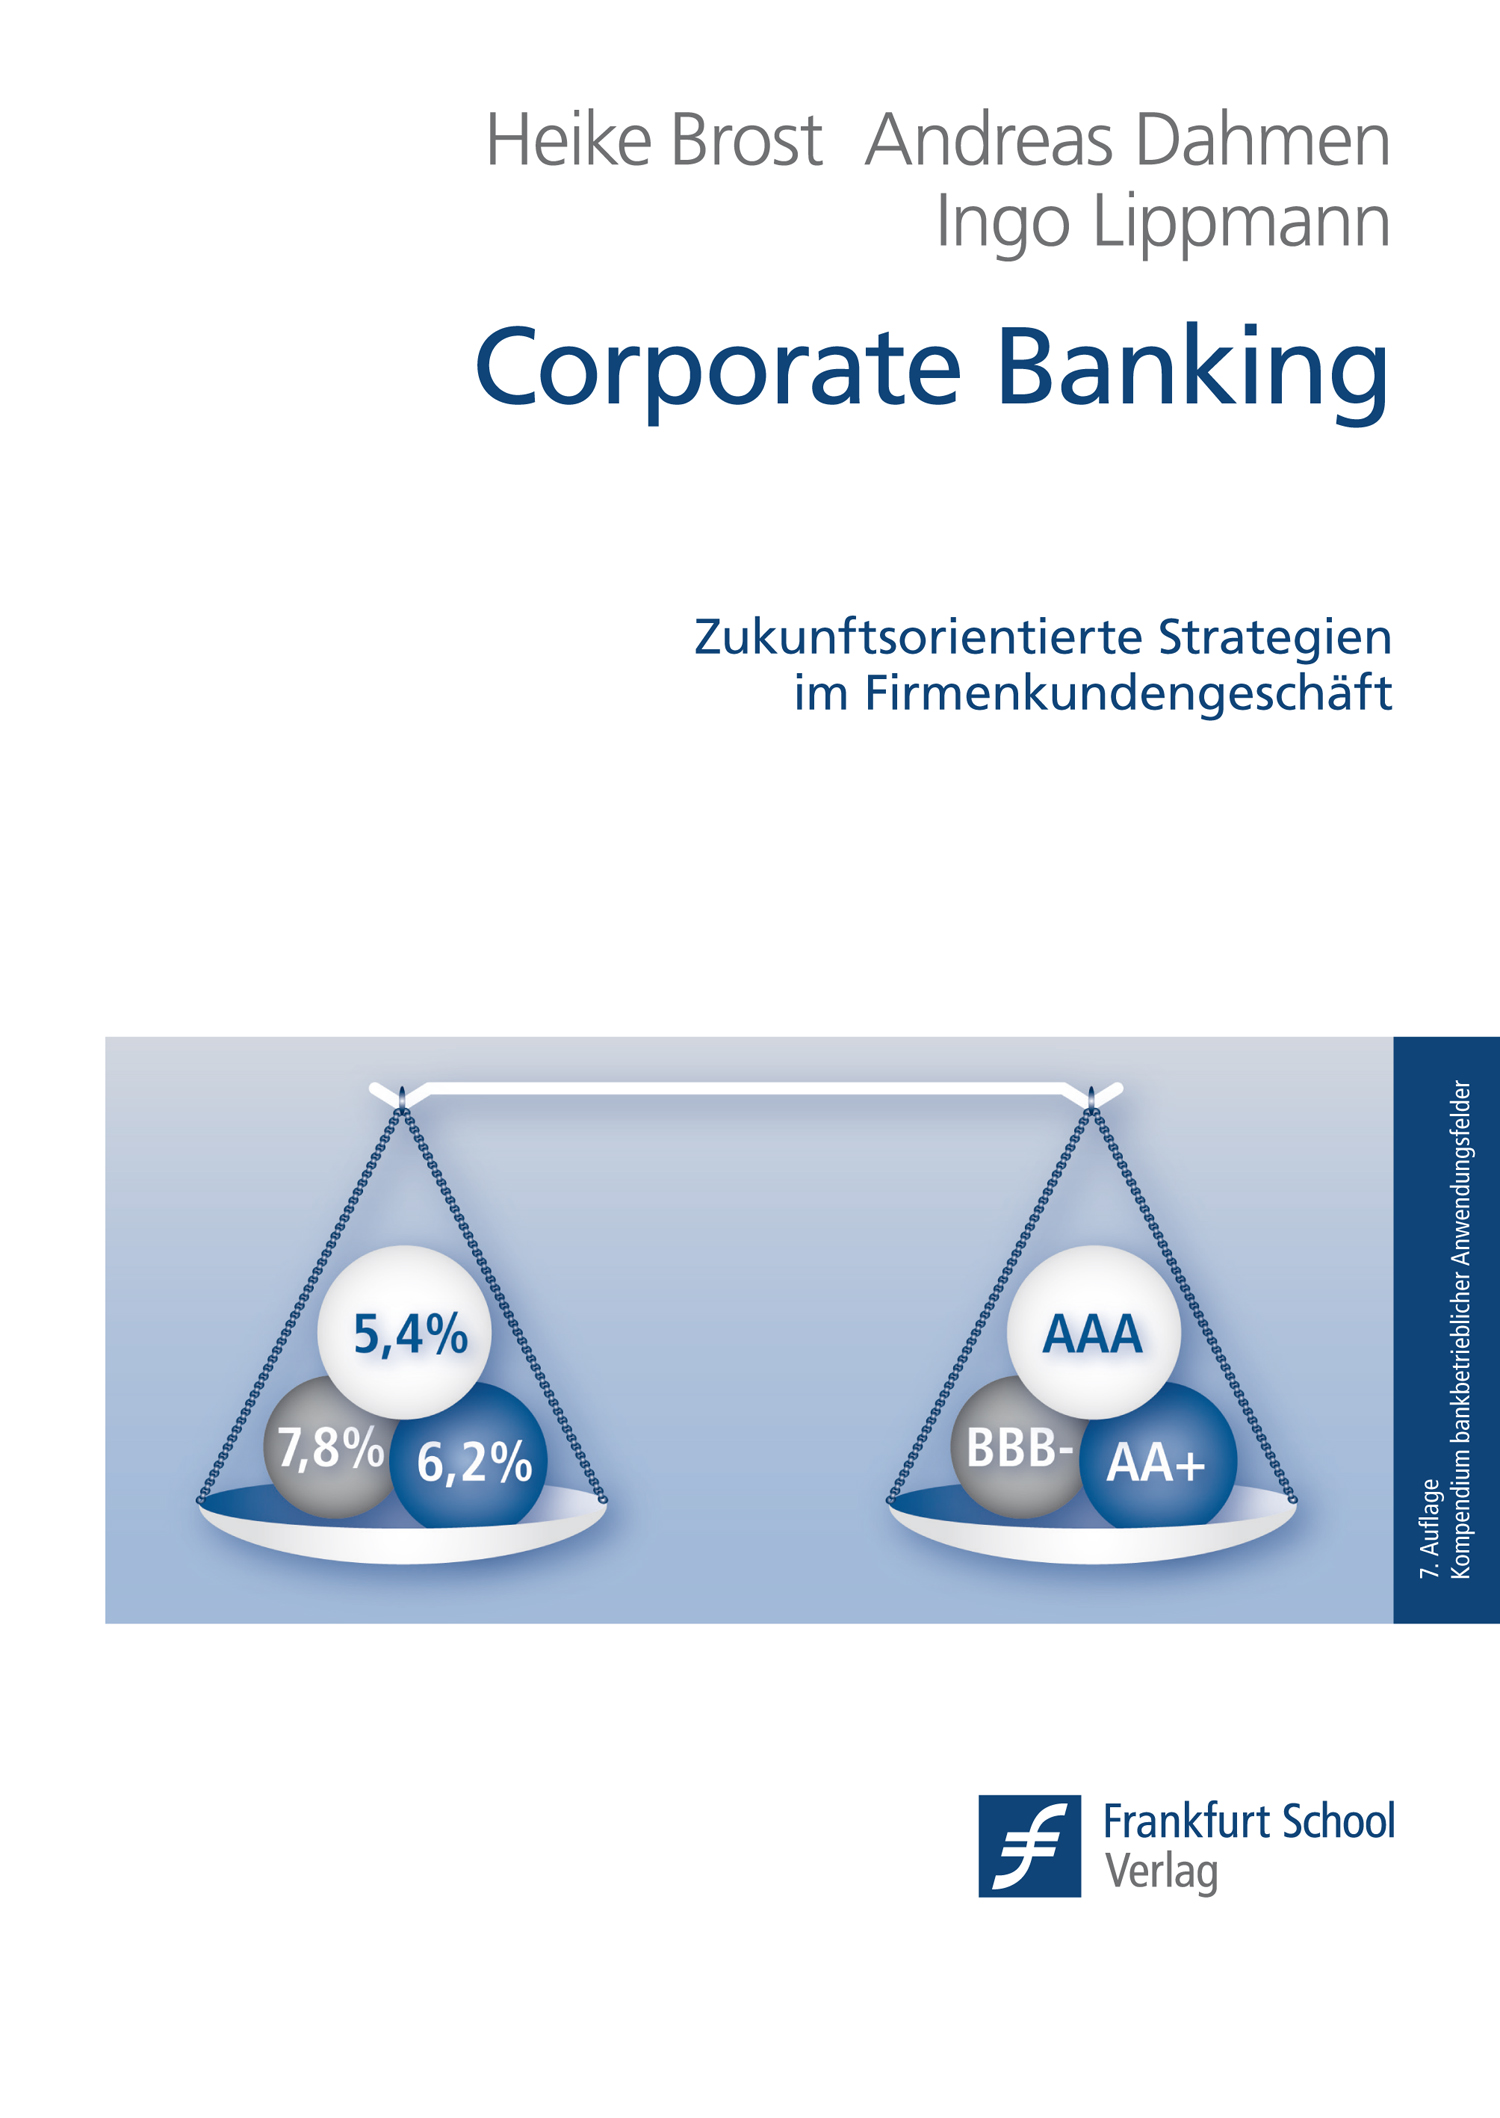 Heike Brost Corporate Banking